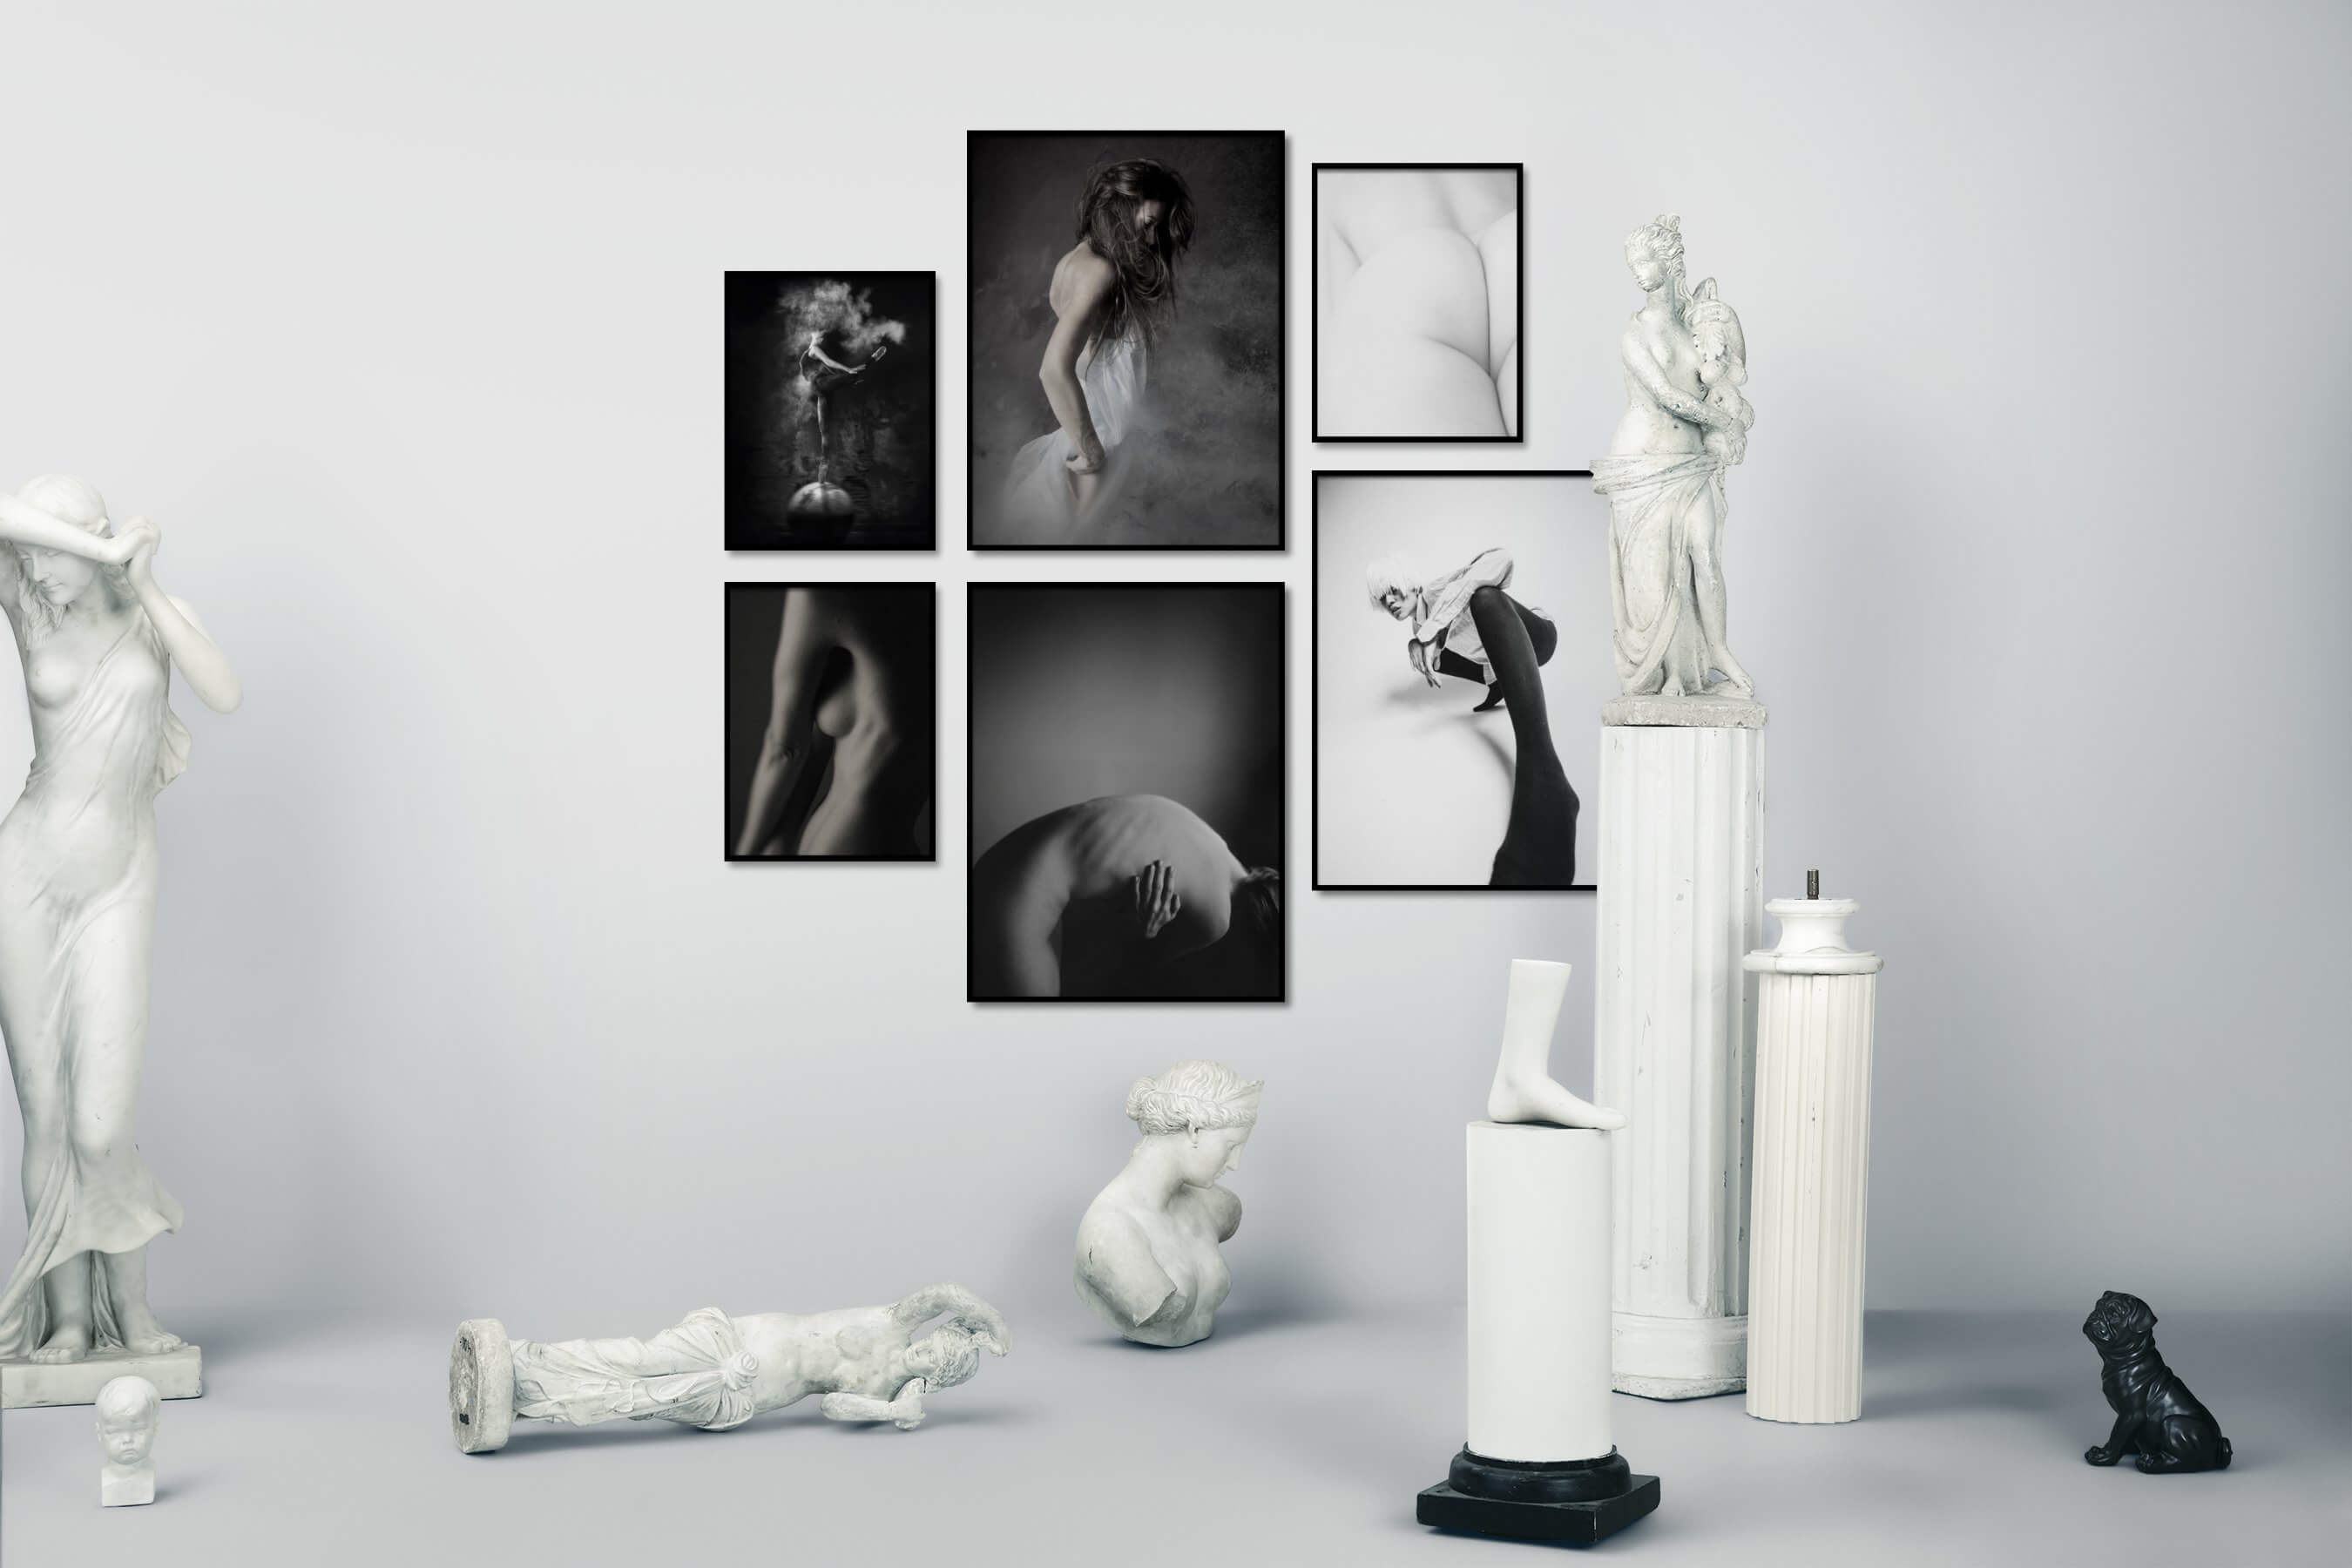 Gallery wall idea with six framed pictures arranged on a wall depicting Fashion & Beauty, Black & White, Dark Tones, For the Moderate, Artsy, For the Minimalist, and Bright Tones